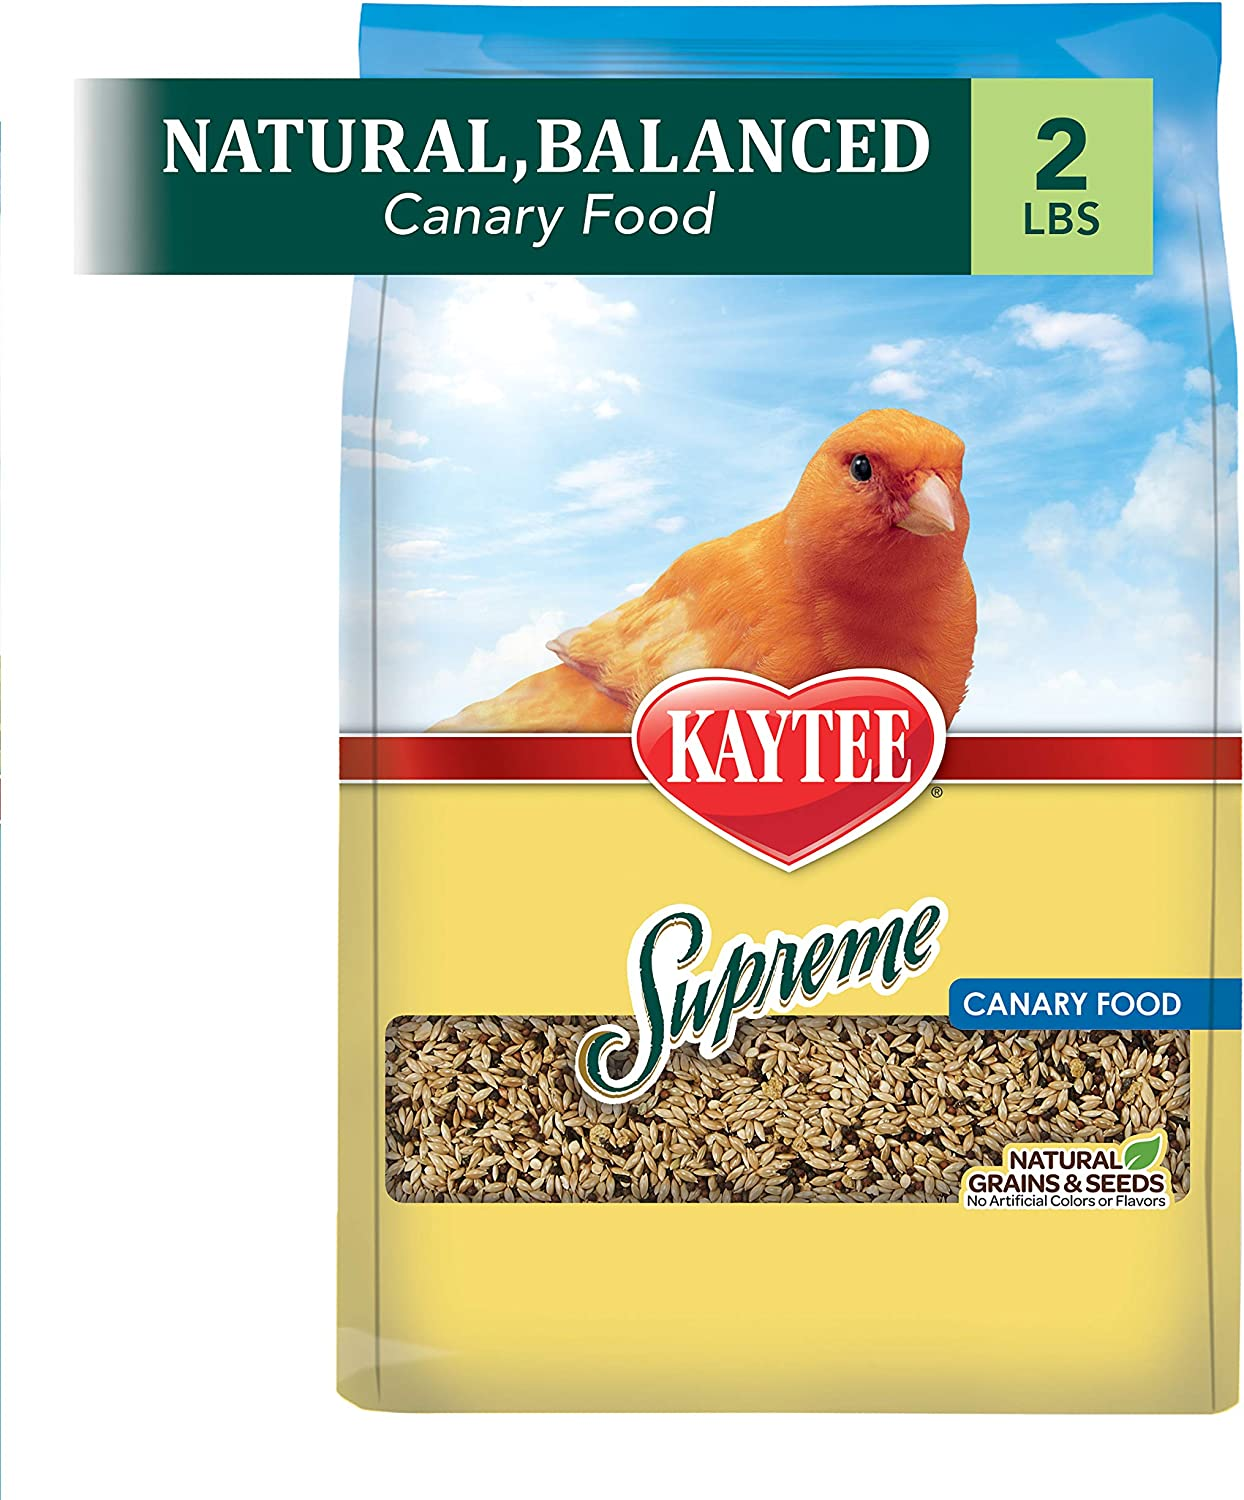 Kaytee Supreme Canary Food